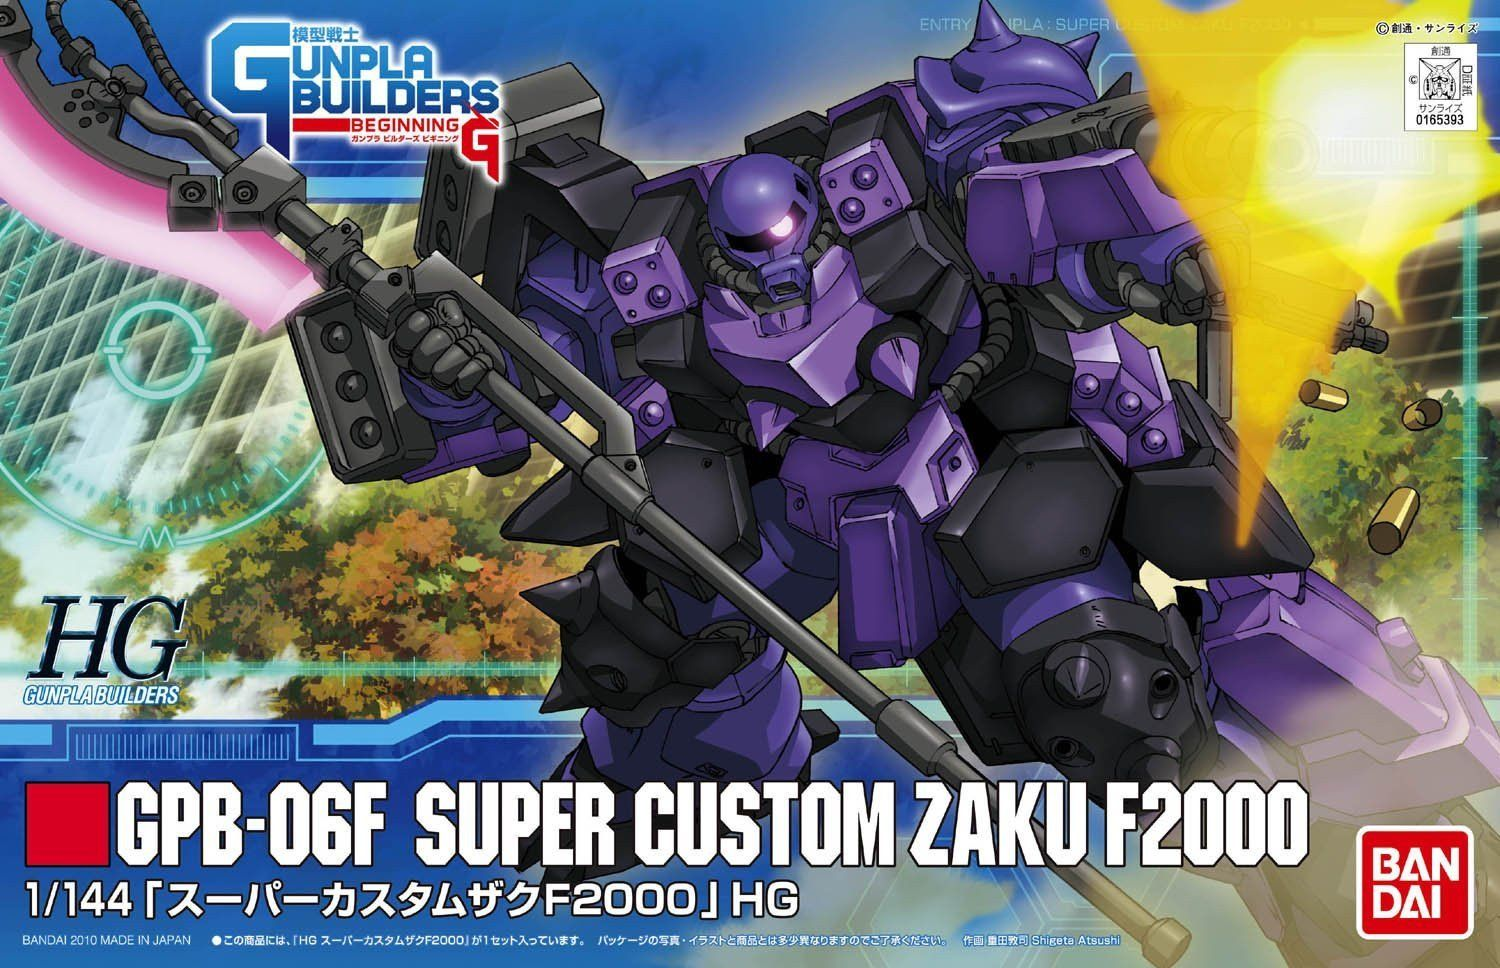 HG 1/144 Super Custom Zaku F2000 Gunpla Builders